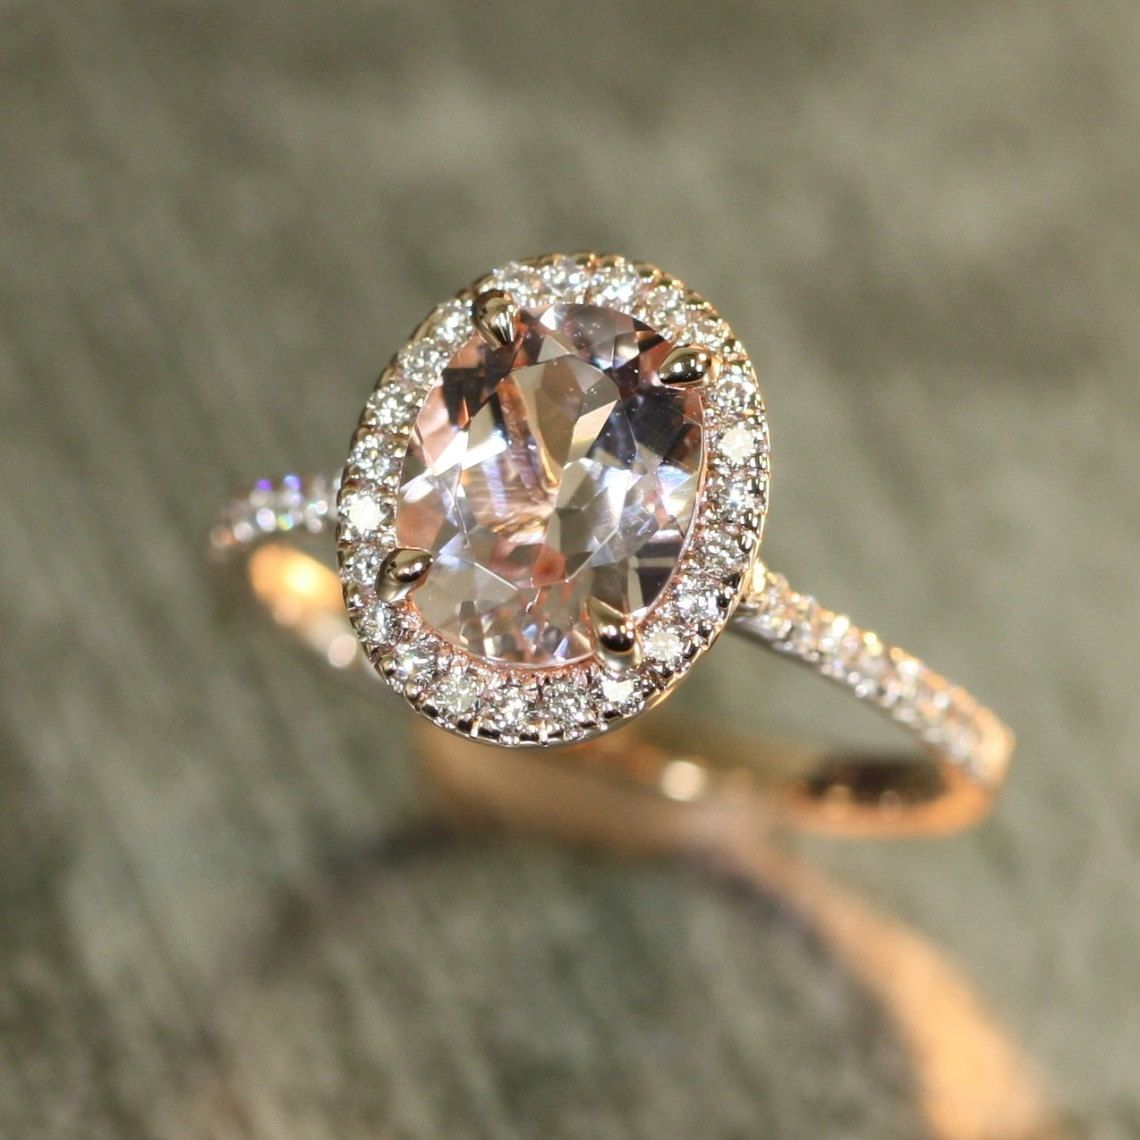 Halo Diamond And Morganite Engagement Ring In 14k Rose Gold 9x7mm Oval  Peach Pink Morganite Ring